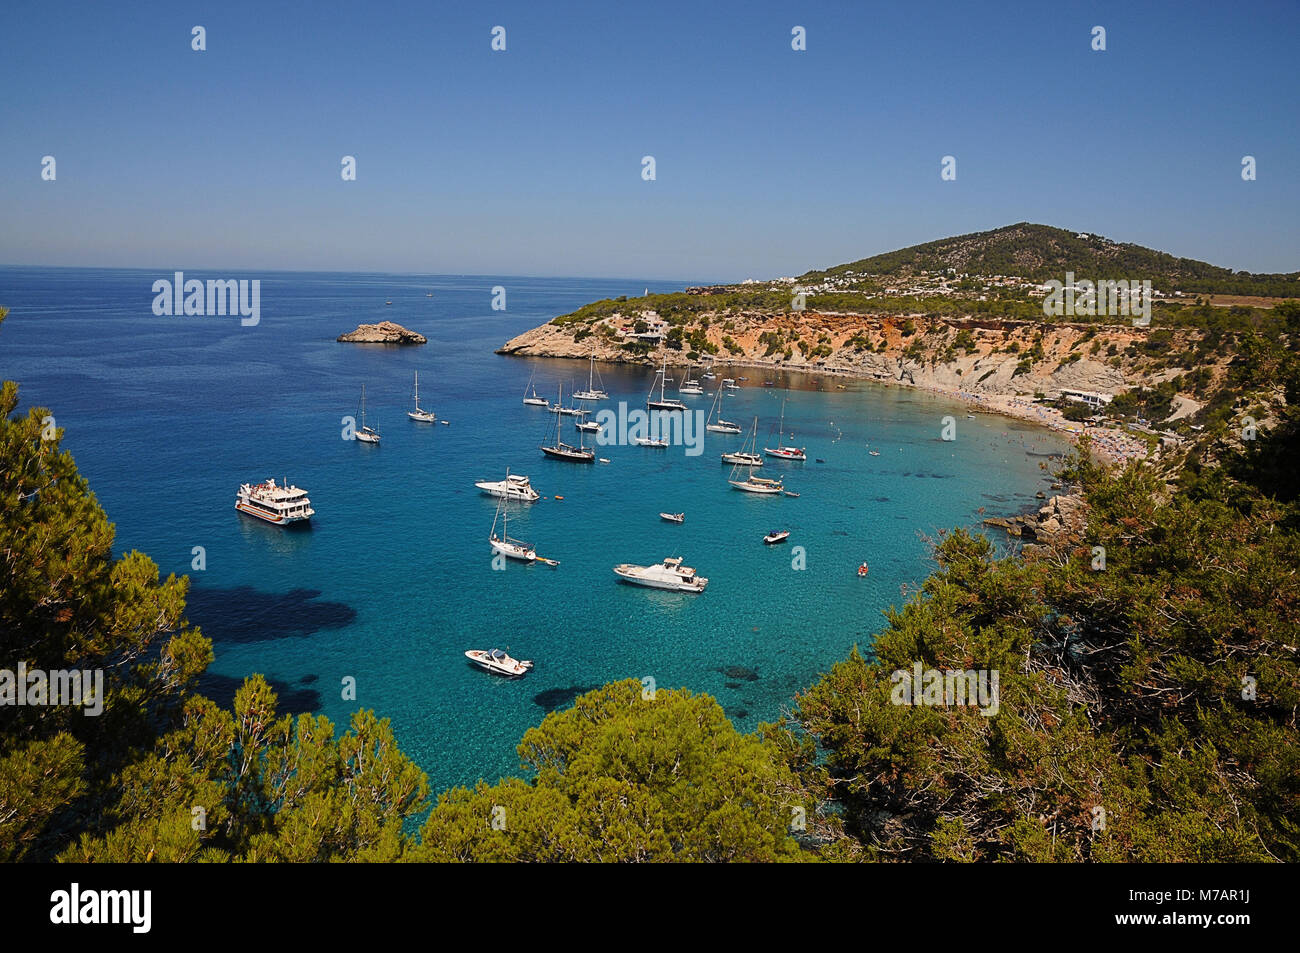 Superyacht, Ibiza, Spain, Landscape, - Stock Image